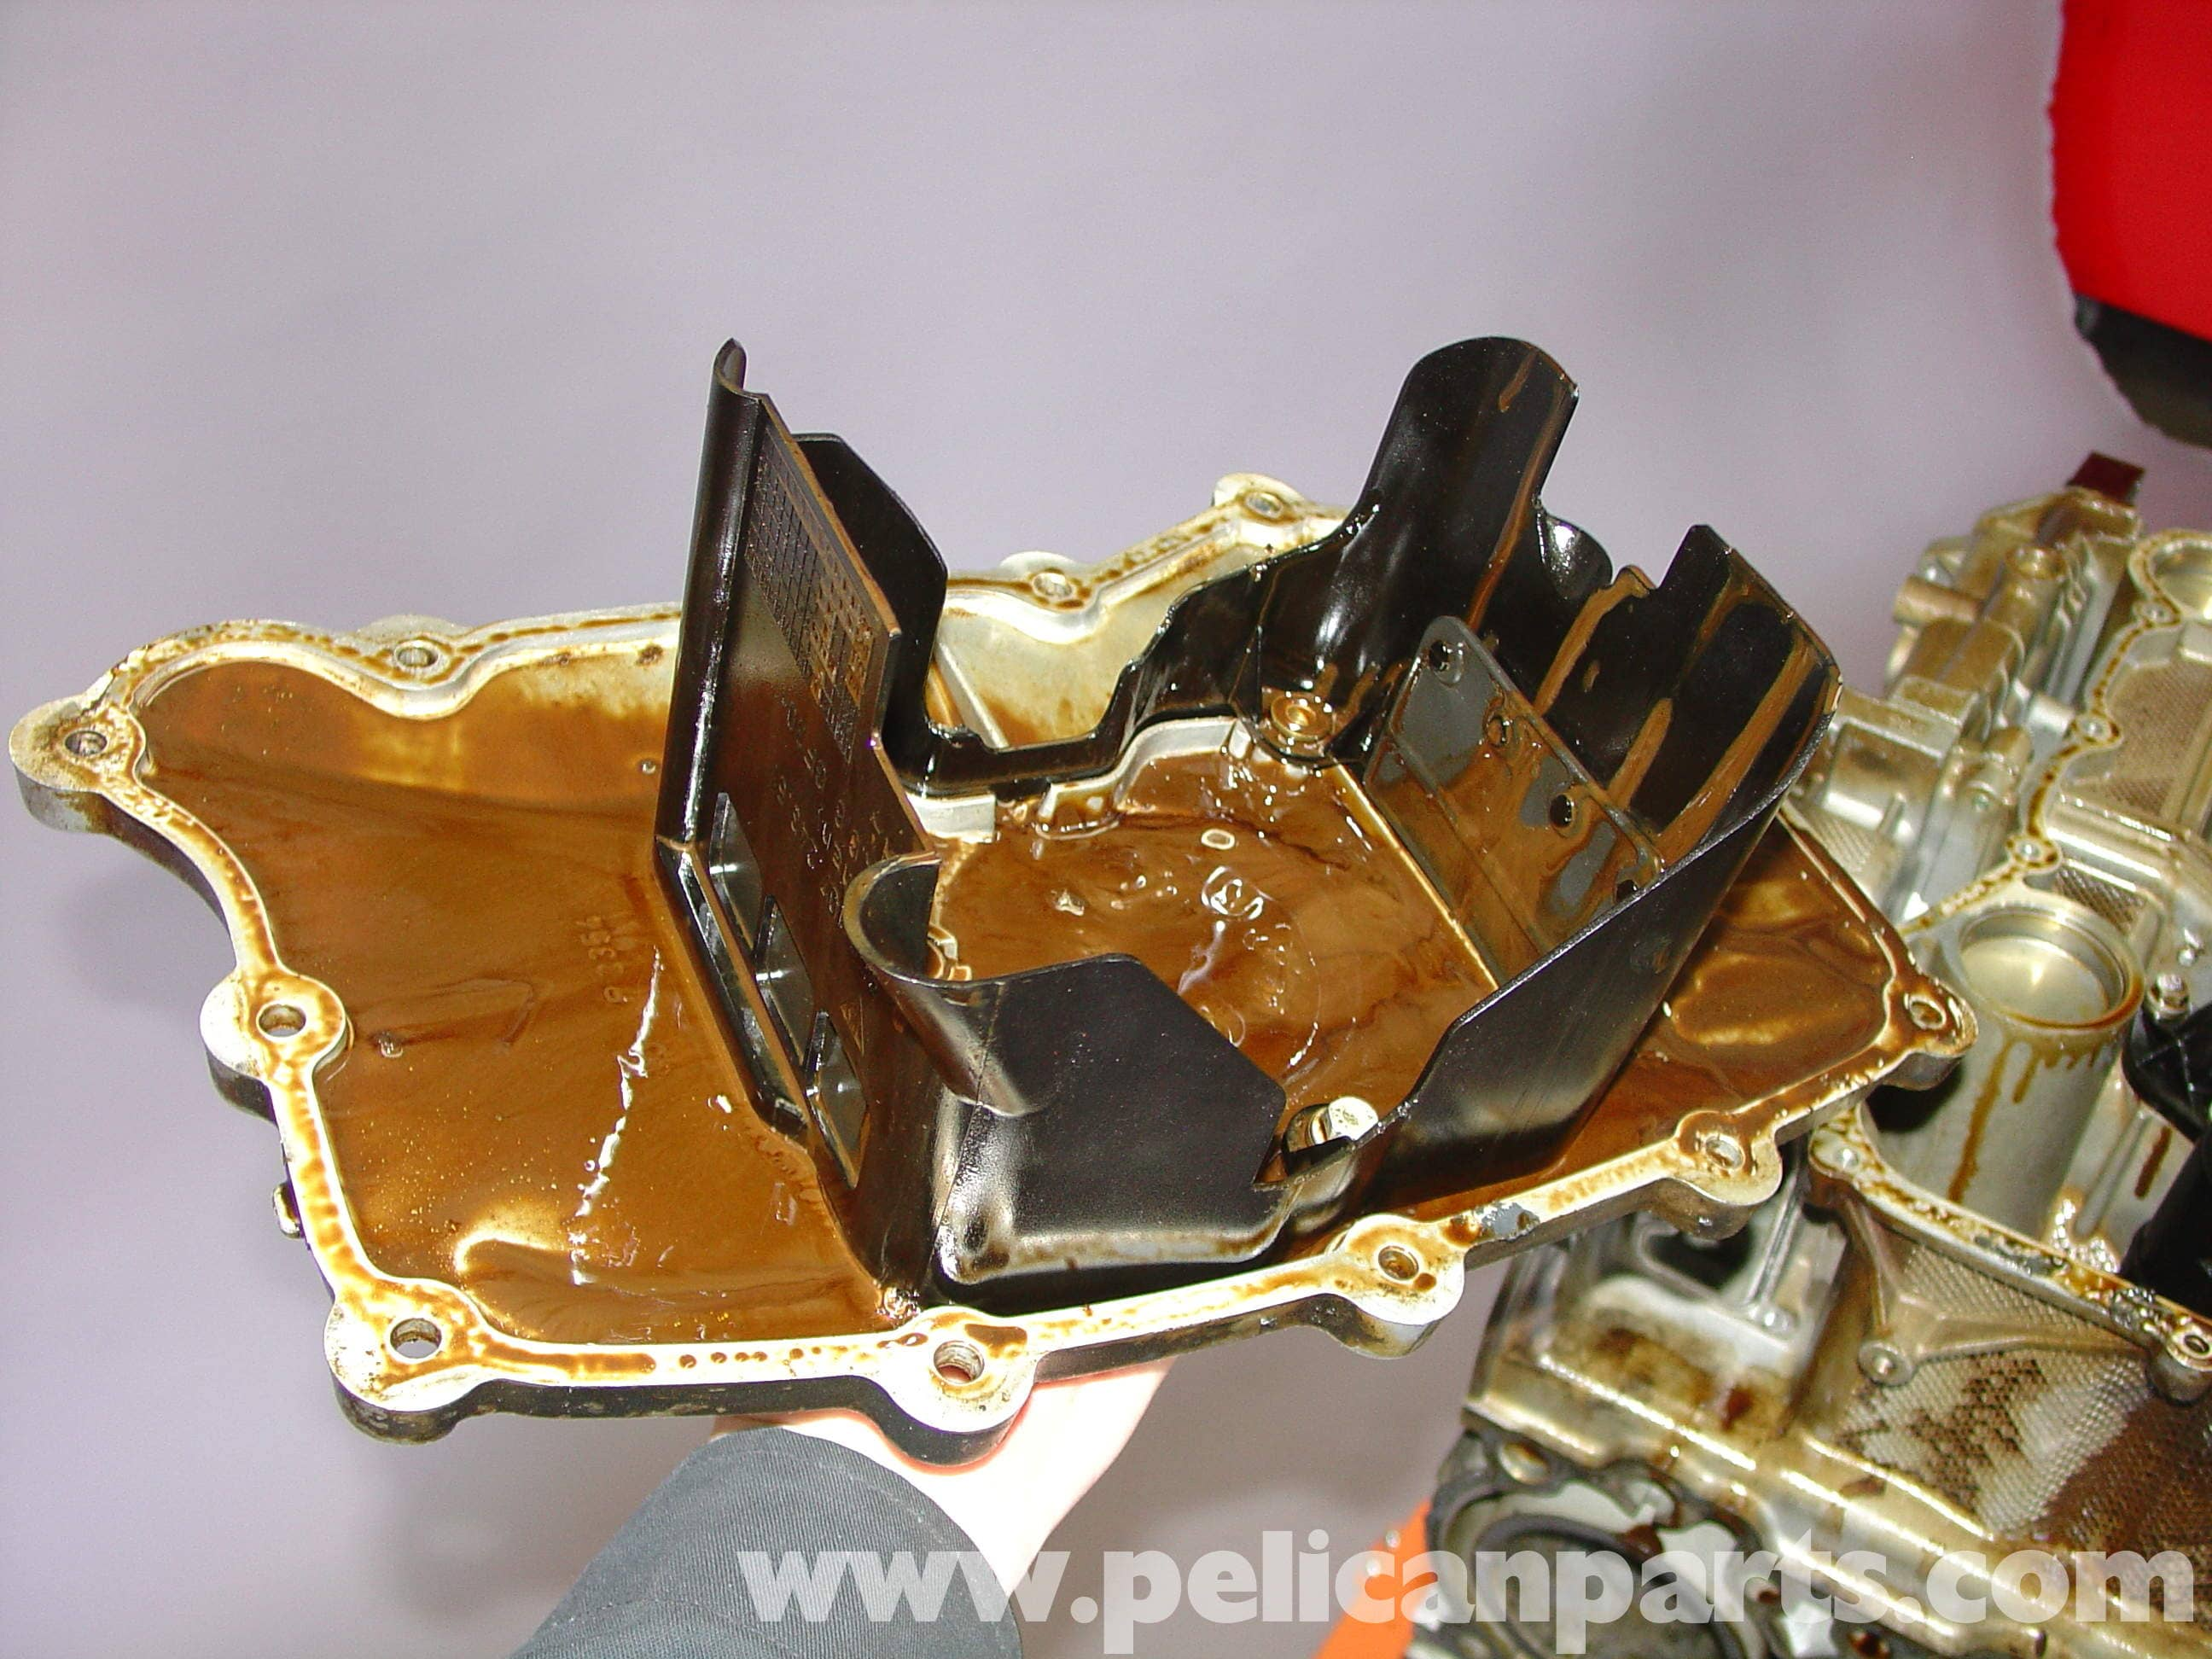 Porsche Boxster Coolant Tank Replacement 986 987 1997 08 Power Window Switch Or Relay Help Pelican Parts Technical Bbs Large Image